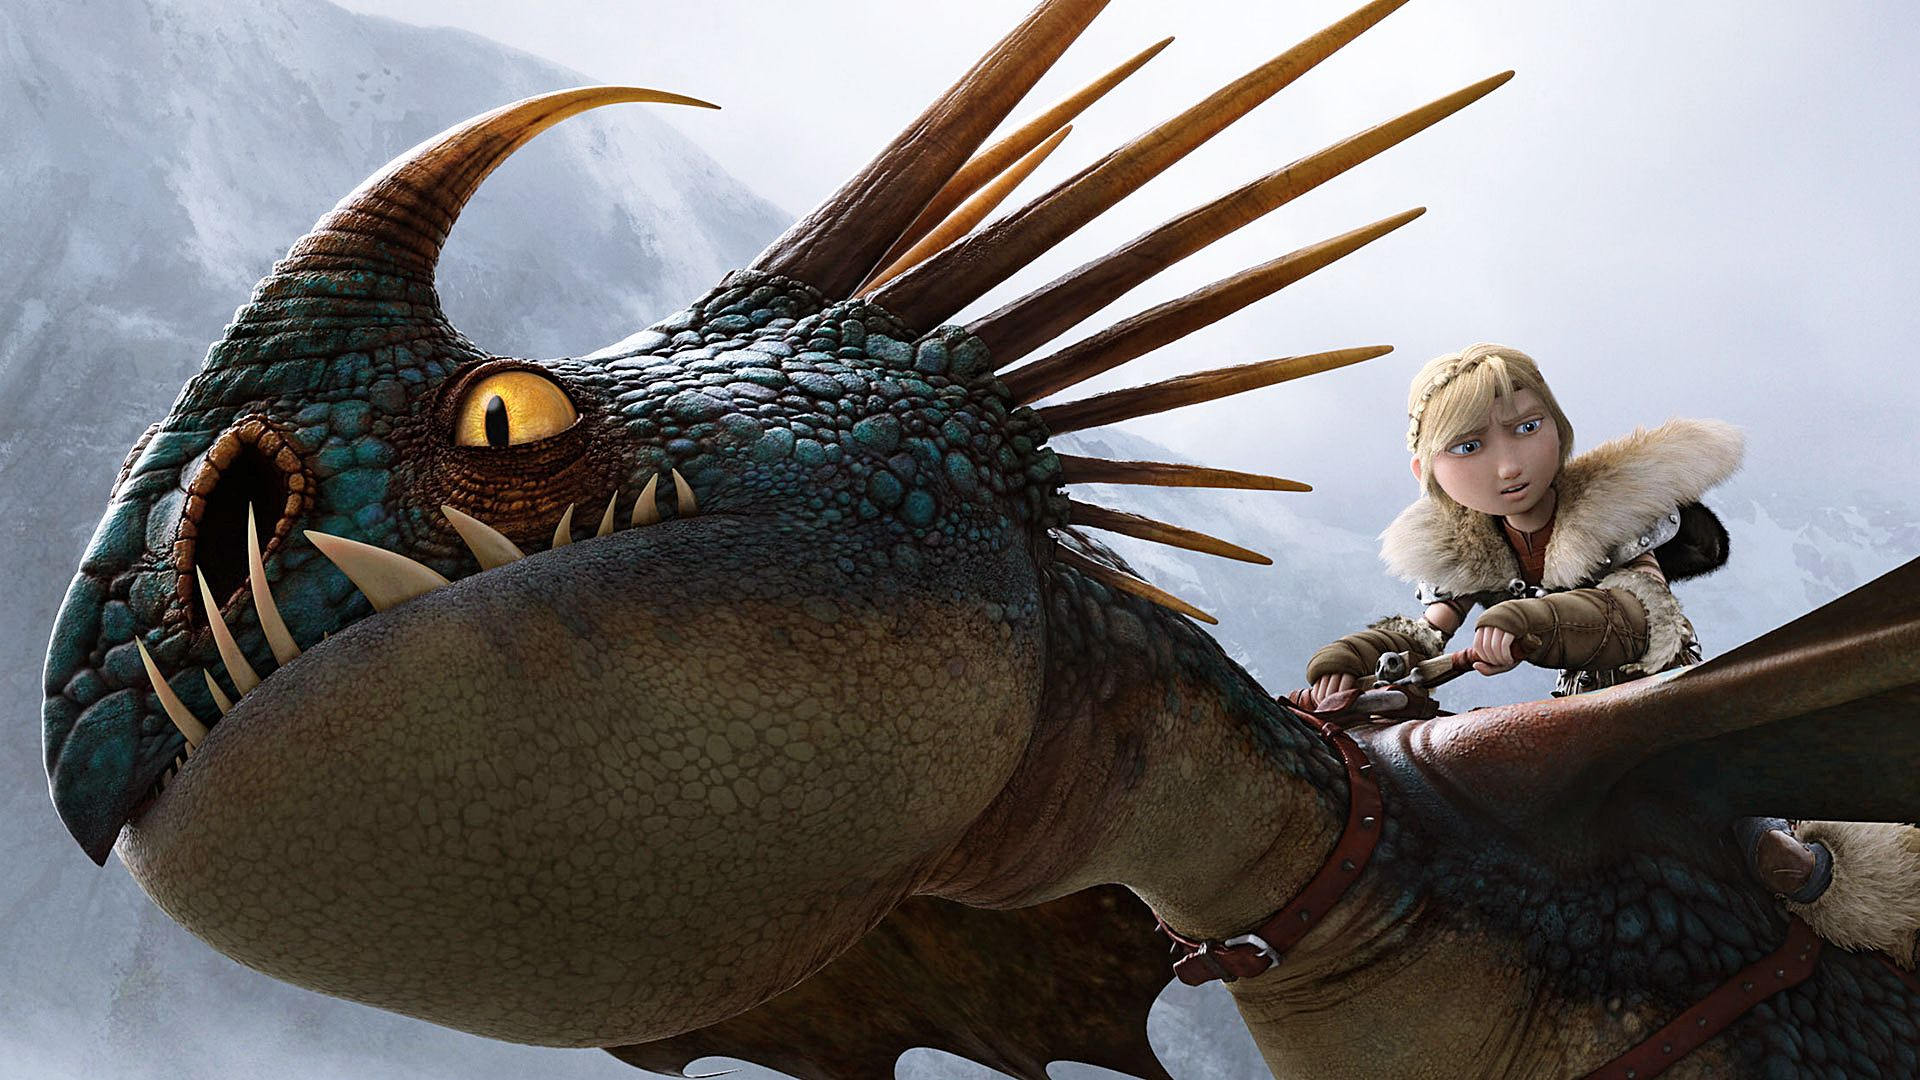 how to train your dragon hd movie download